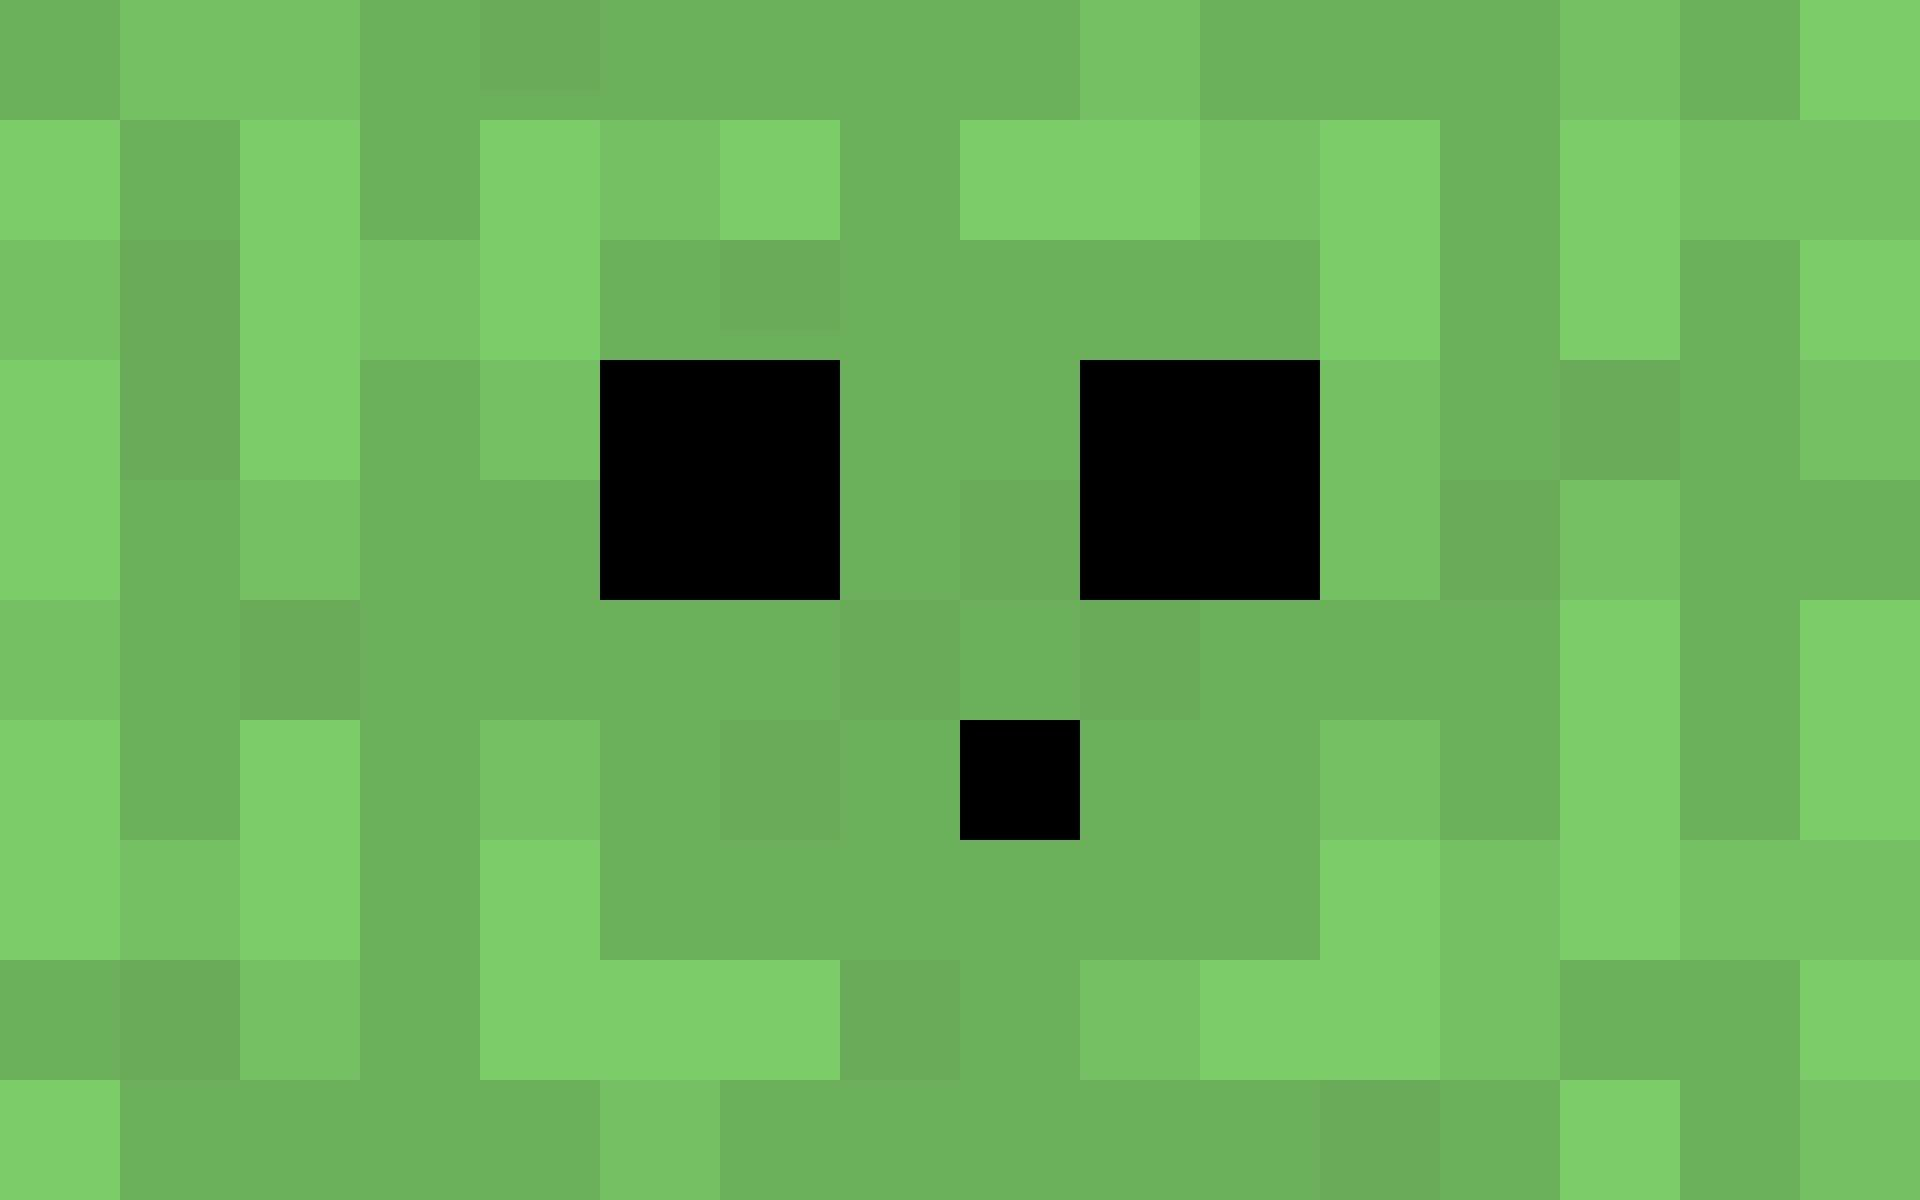 1920x1200 Wallpaperwiki Minecraft Creeper Iphone Background For Desktop Download Fabulous Awesome Wallpapers